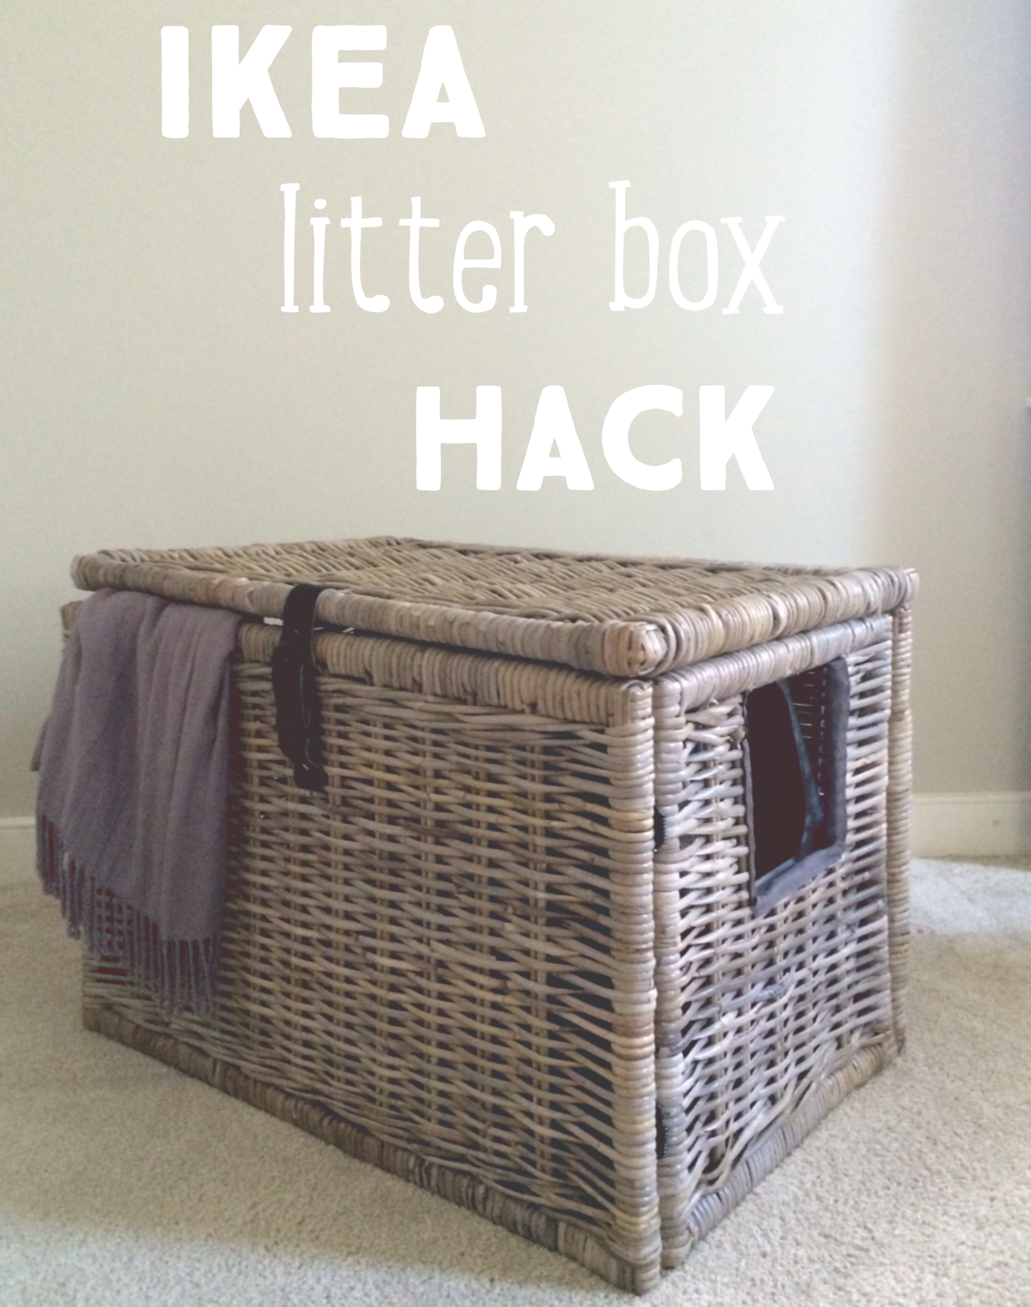 Super Easy Ikea Hack Turn Wicker Chest Into A Secret Litter Box